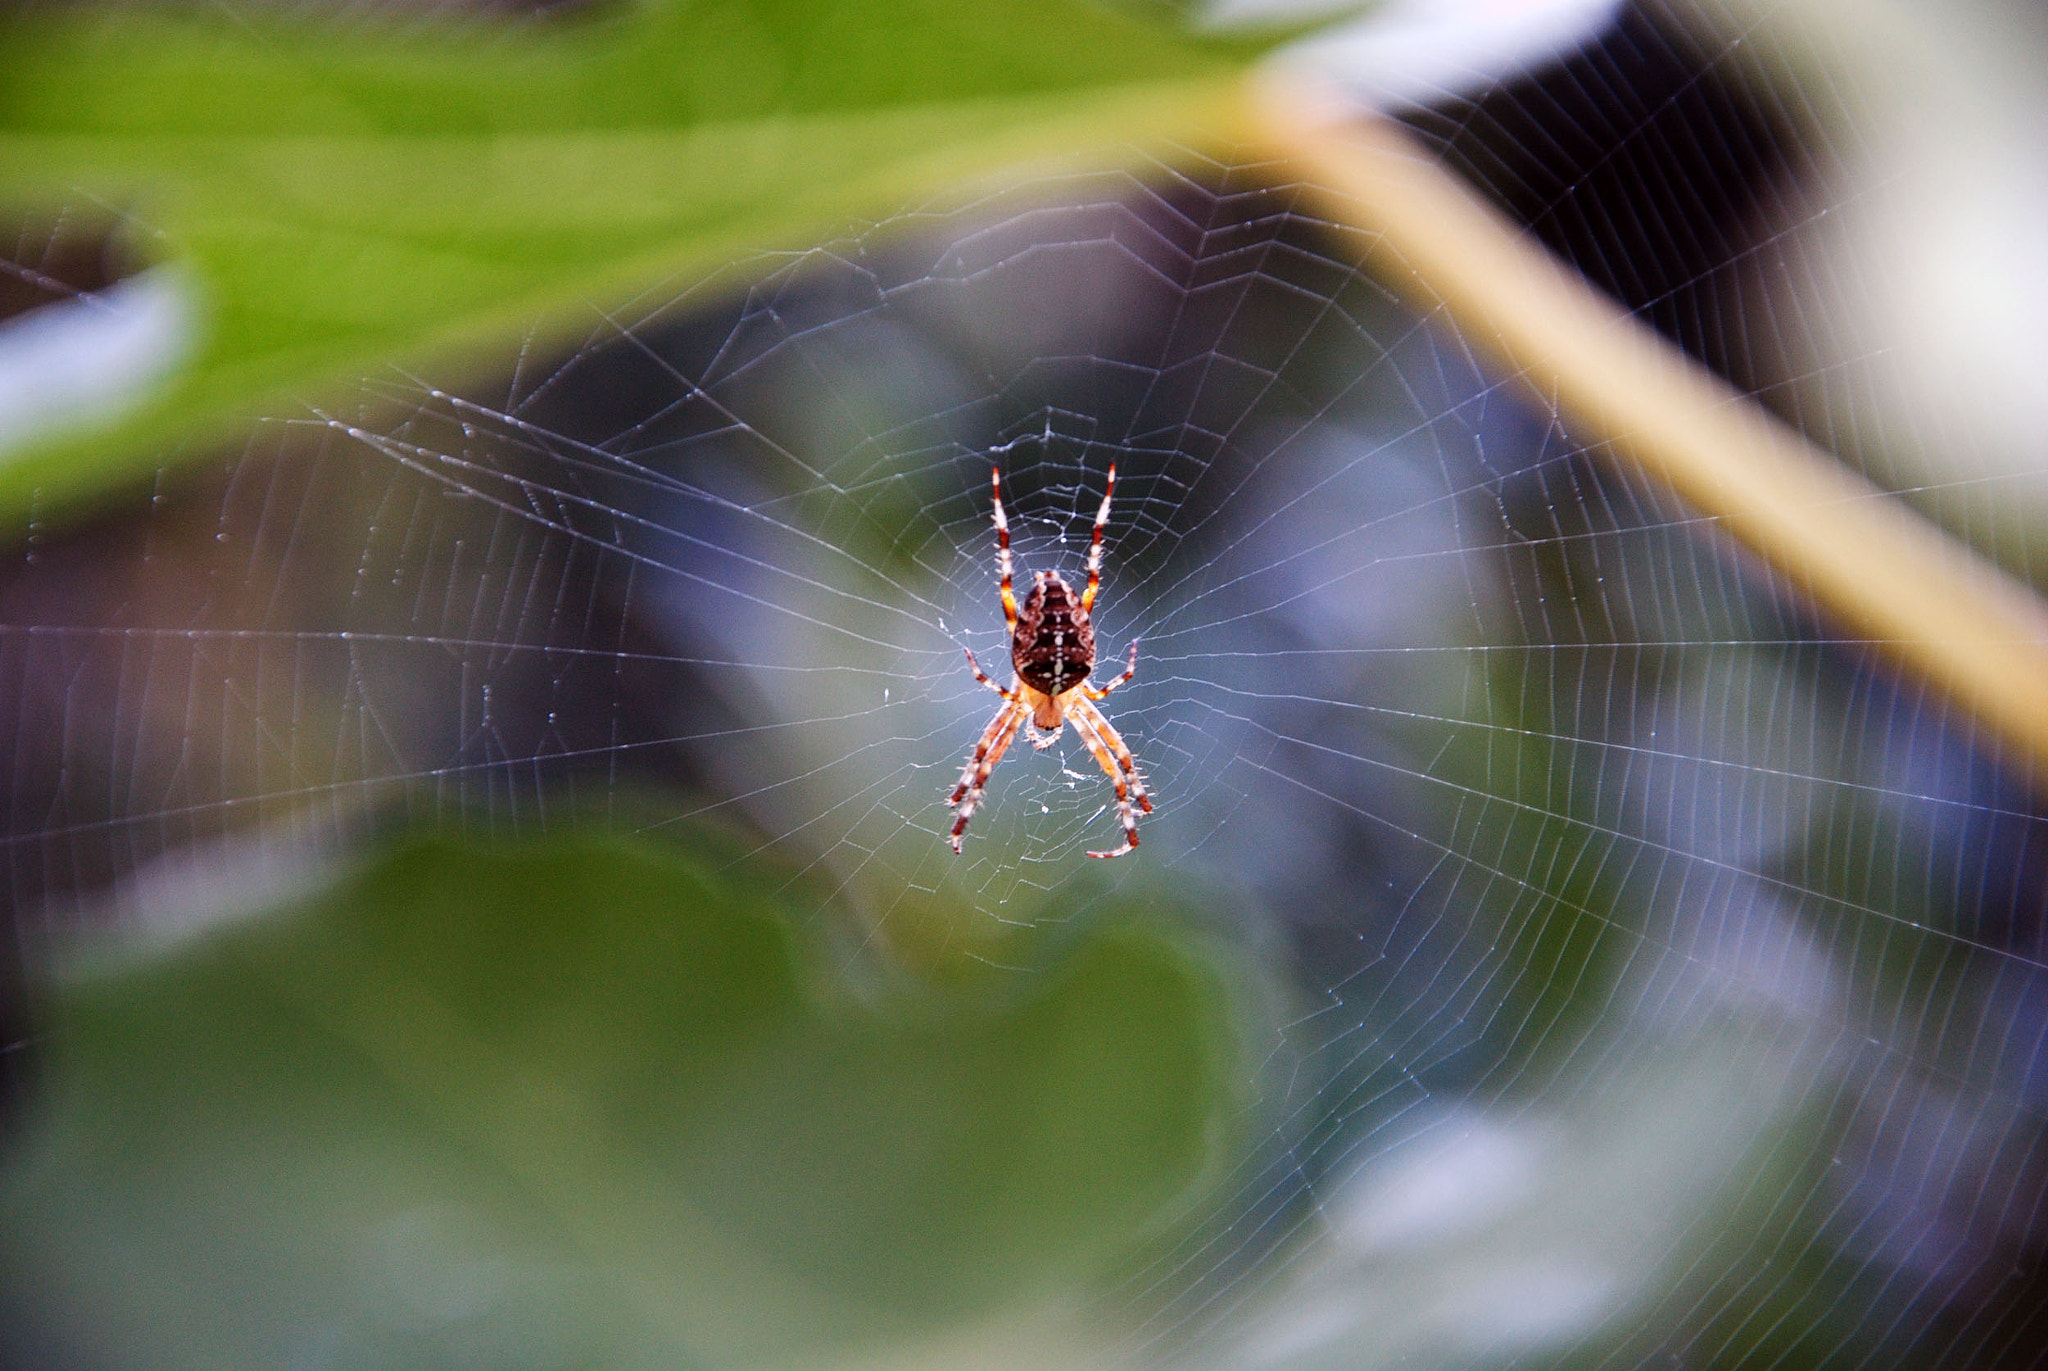 Photograph Spider's art by Letizia Soldano on 500px